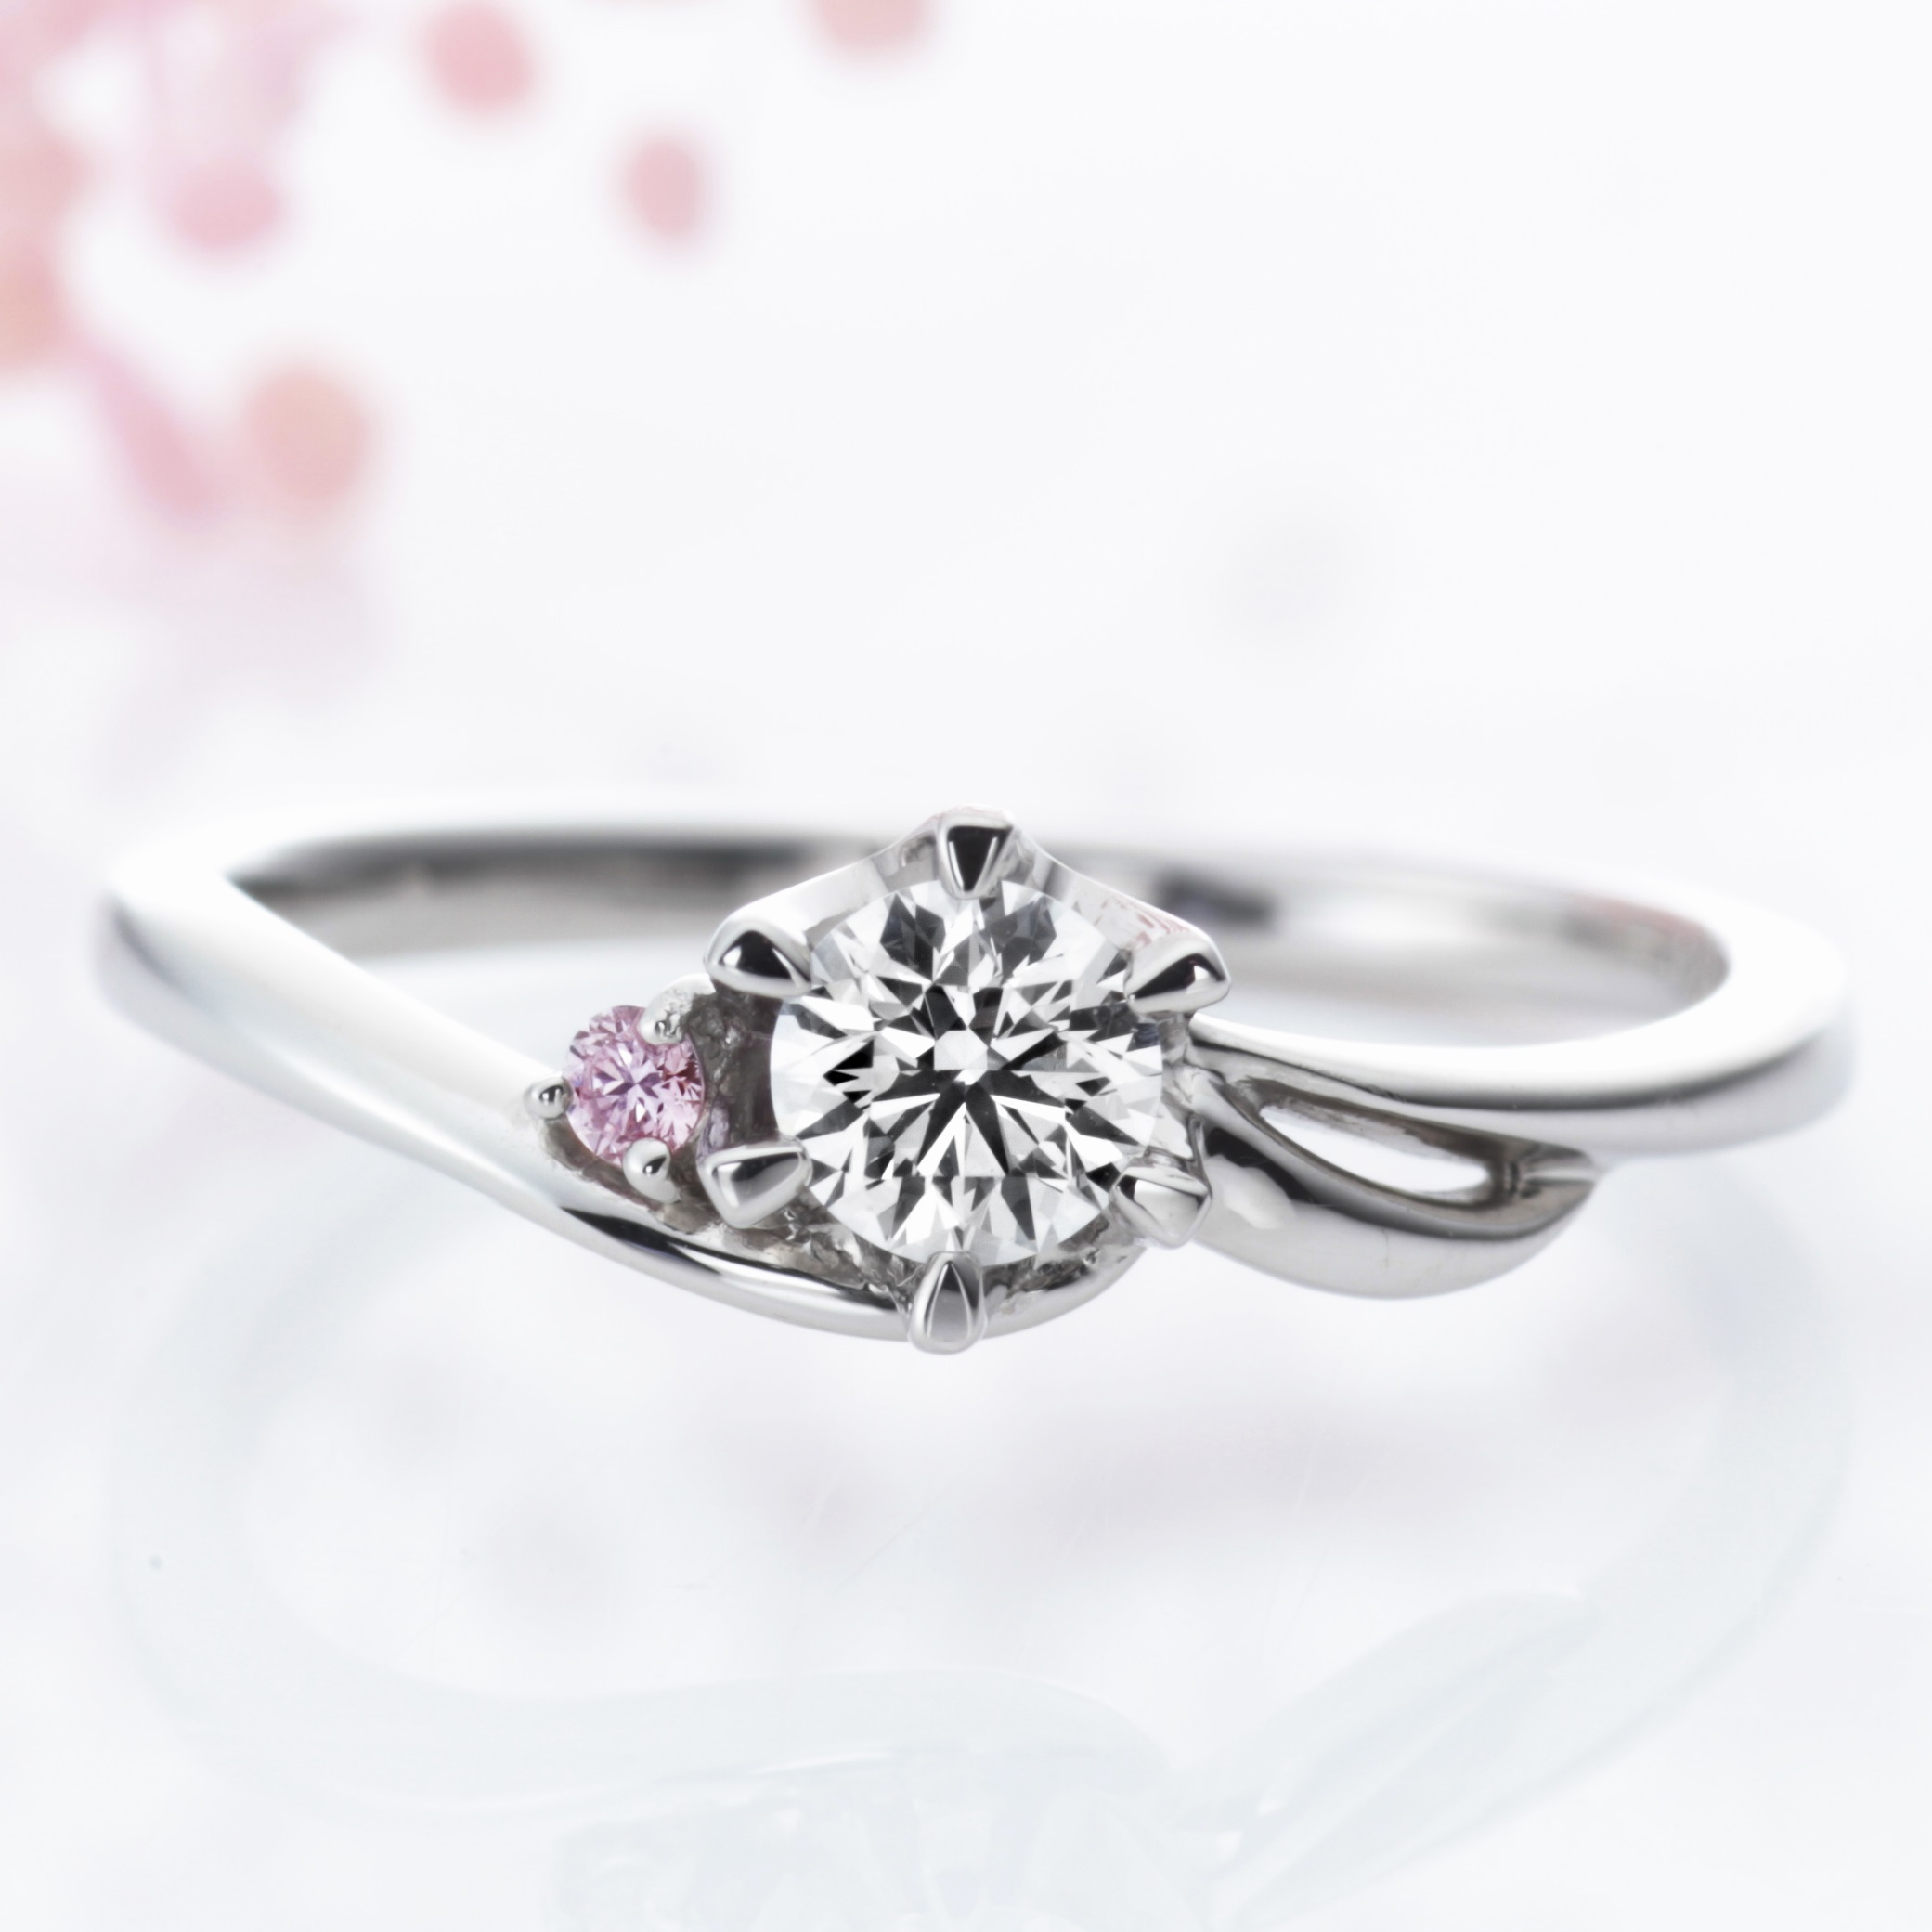 diamond product engagement rings cut archer apink ring round pink brilliant holland wedding